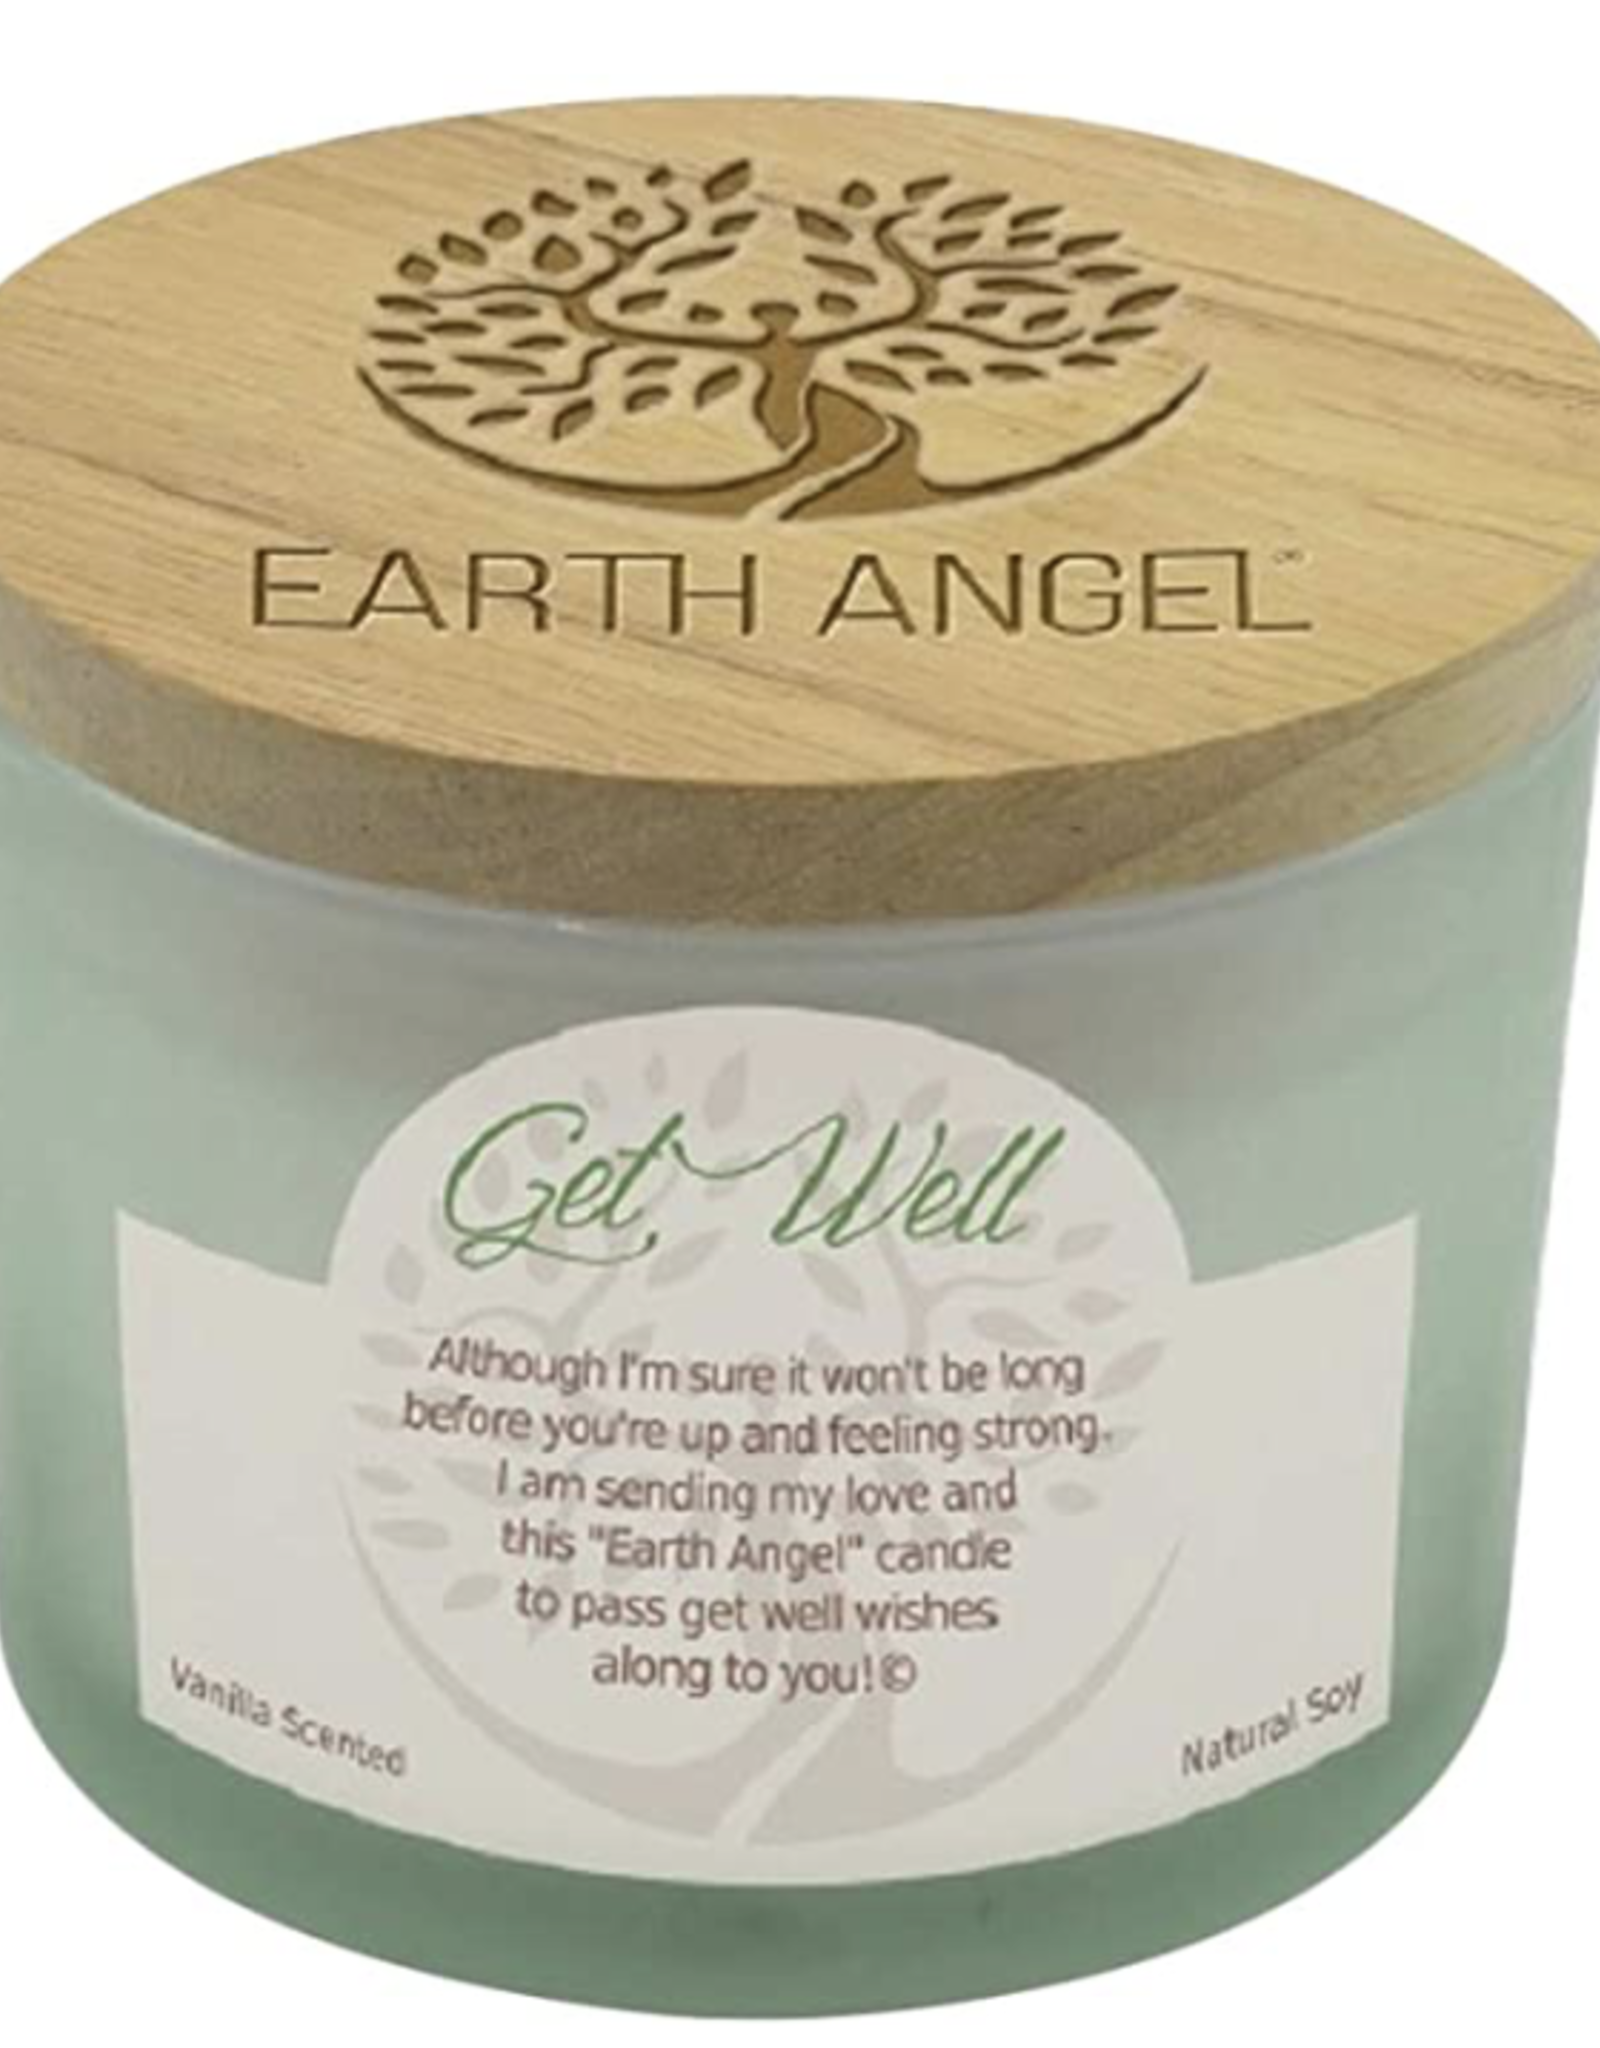 EARTH ANGEL Earth Angel Candle - Get Well